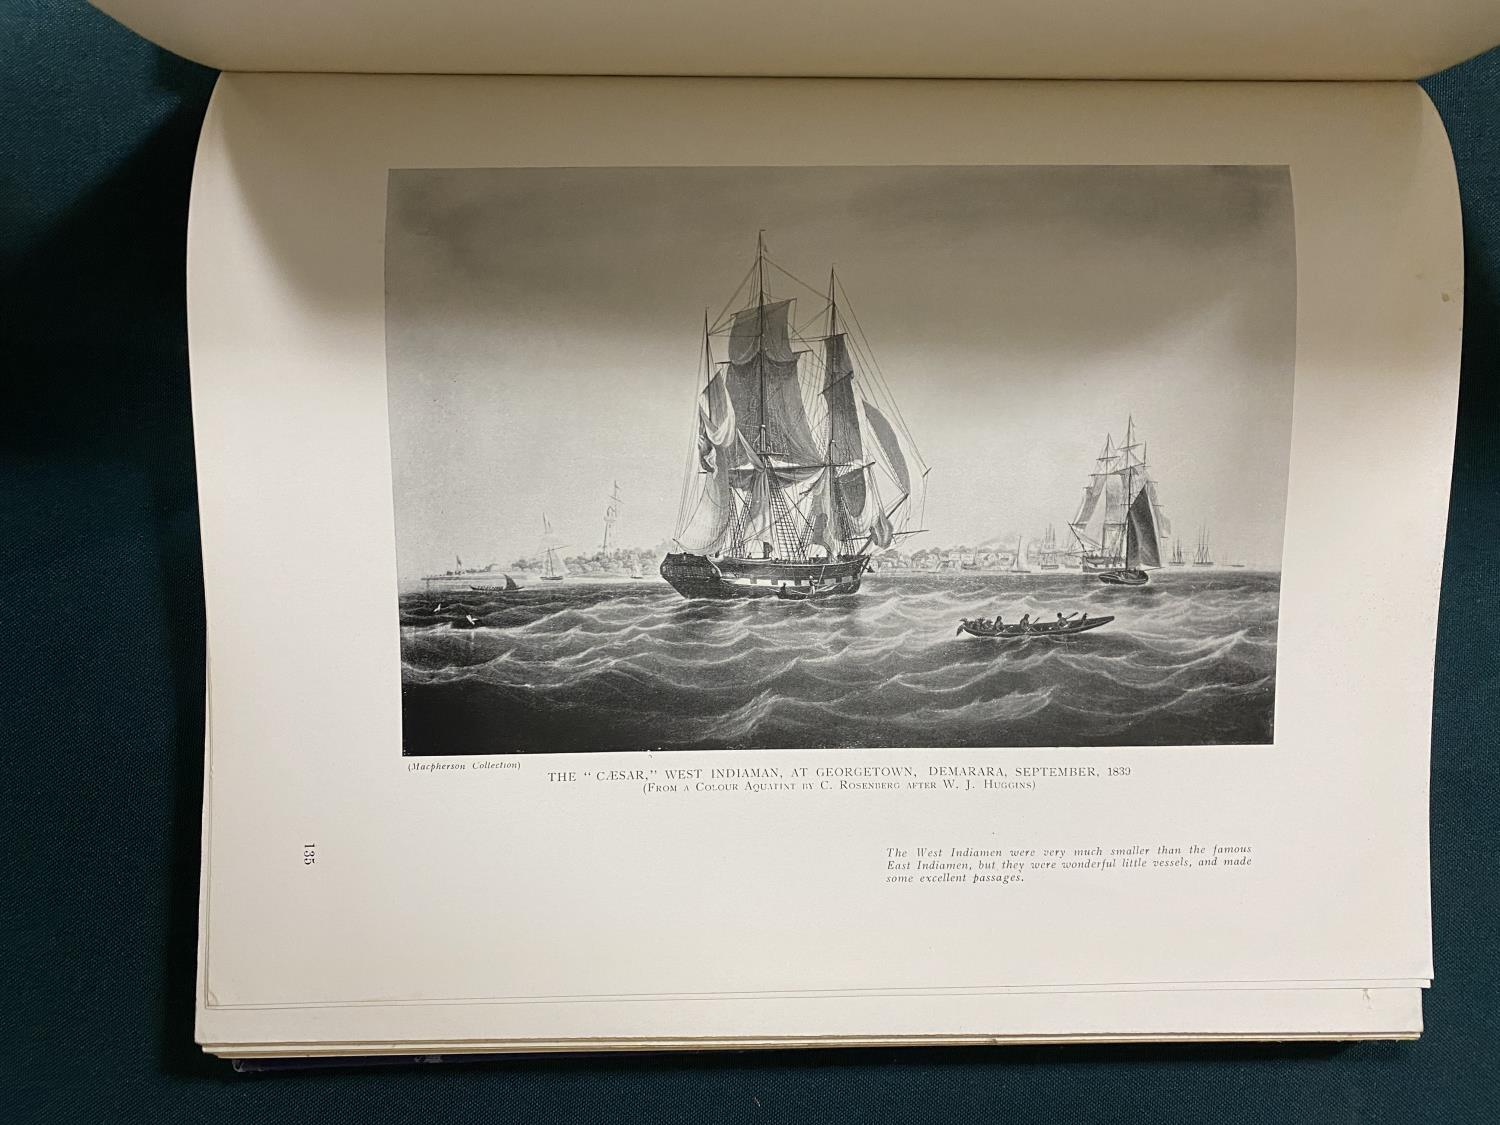 Bowen, Frank Charles. The Sea, Its History and Romance, 4 volumes, first edition, plates, some - Image 5 of 6